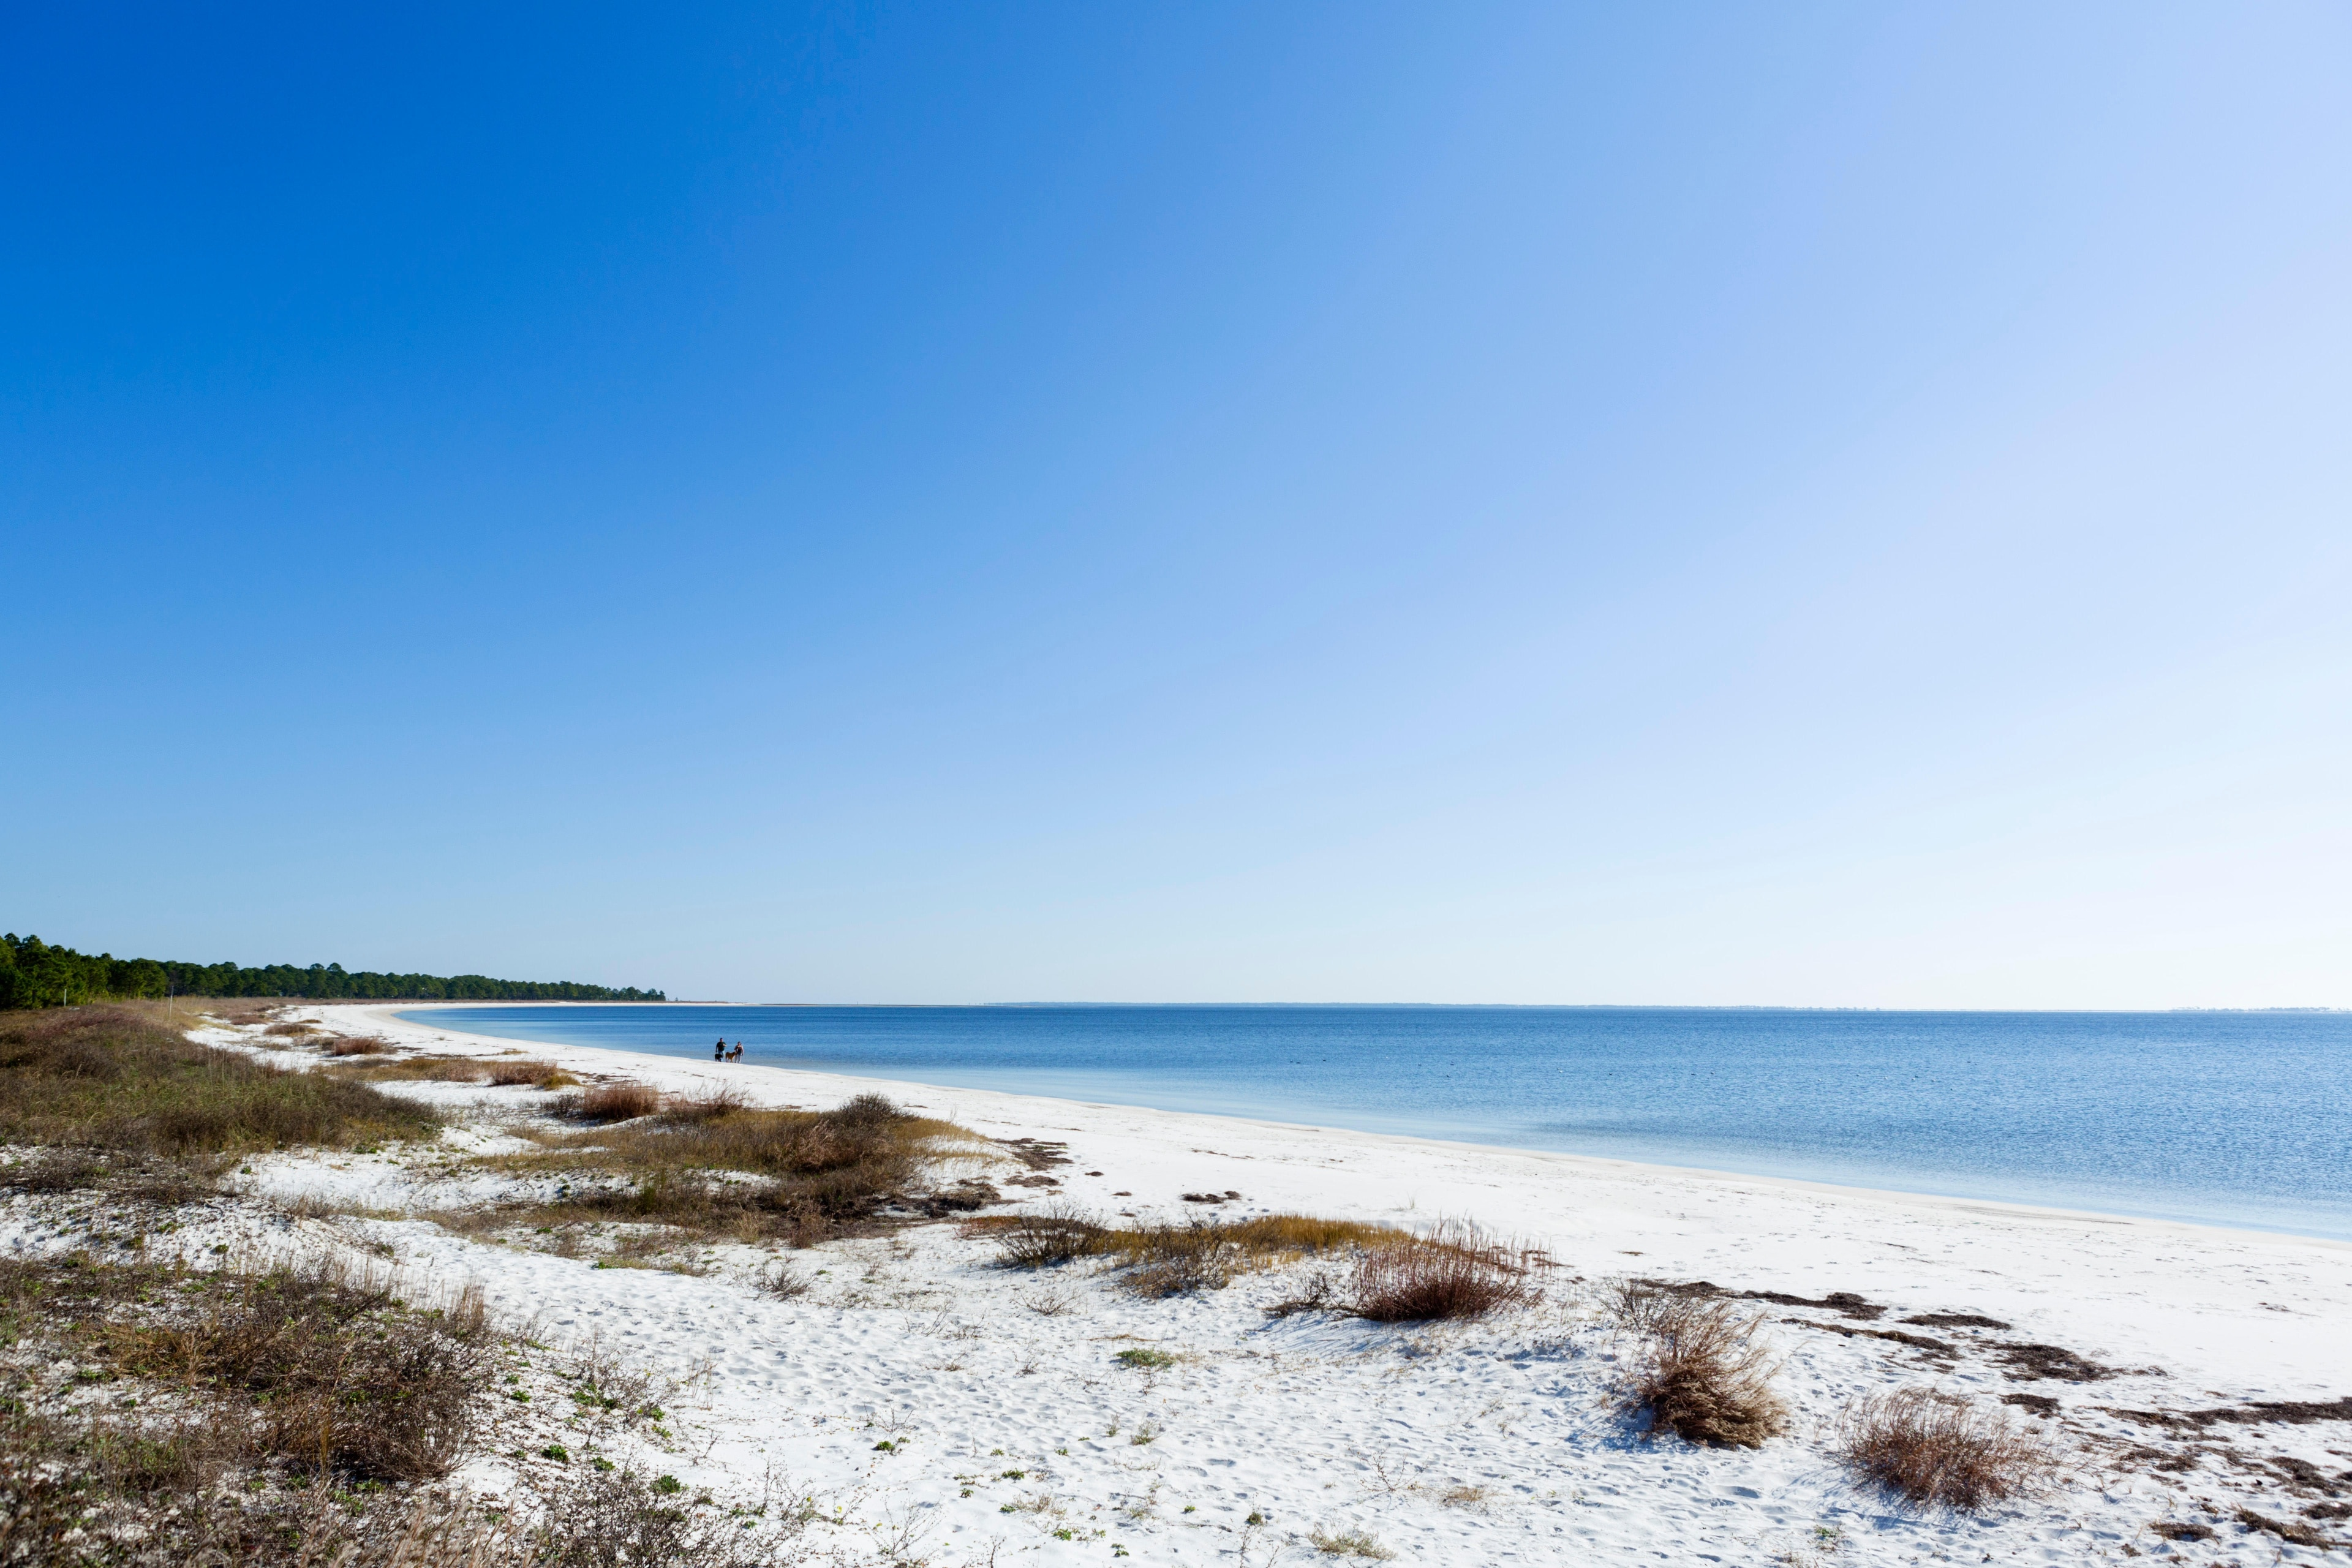 Carrabelle, Florida, United States of America